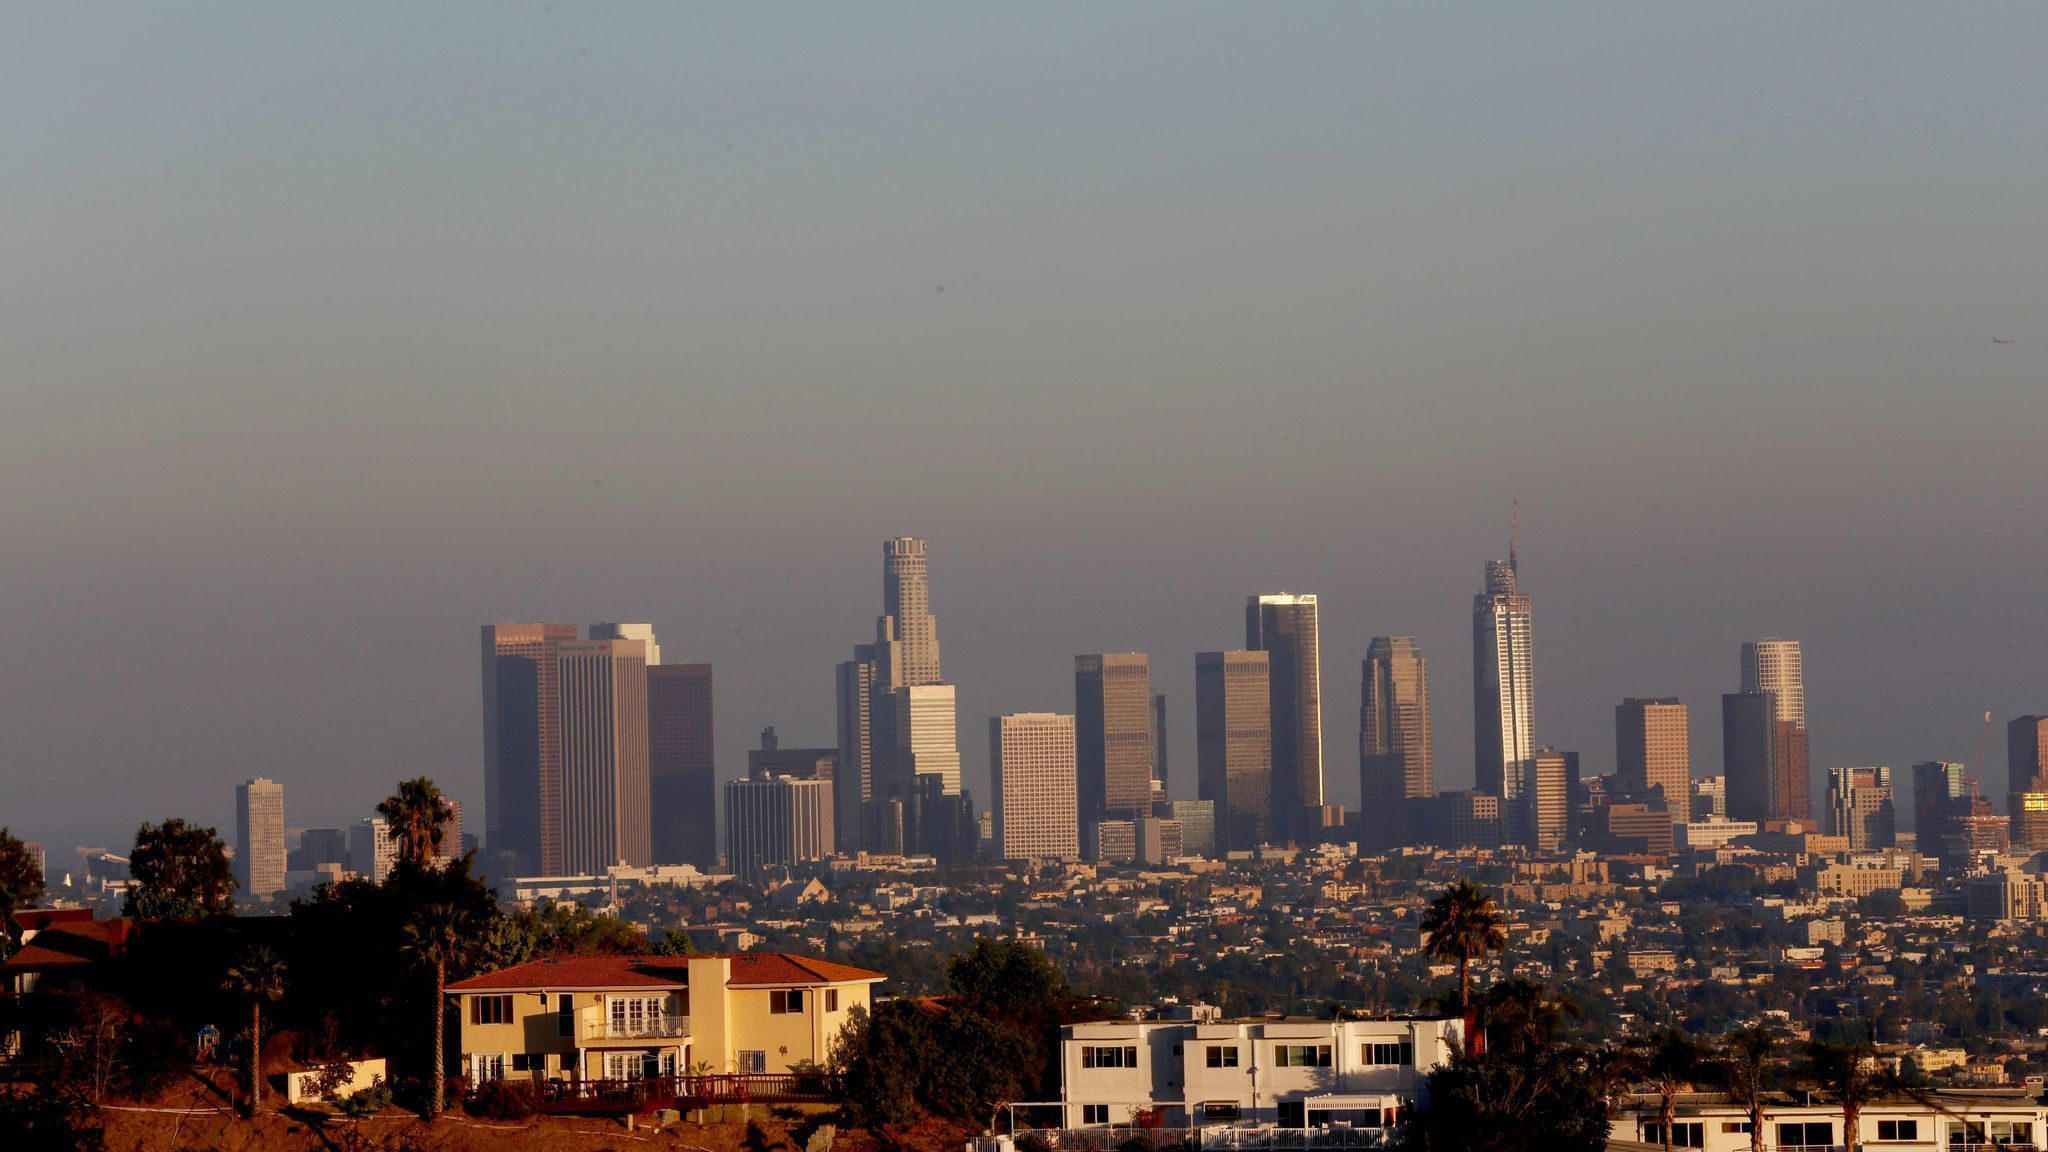 air pollution in the los angeles basin essay Nevertheless, the four-county los angeles basin still has some of the nation's worst levels of ozone, a key ingredient of smog, and fine particles, which have been linked to asthma attacks and .